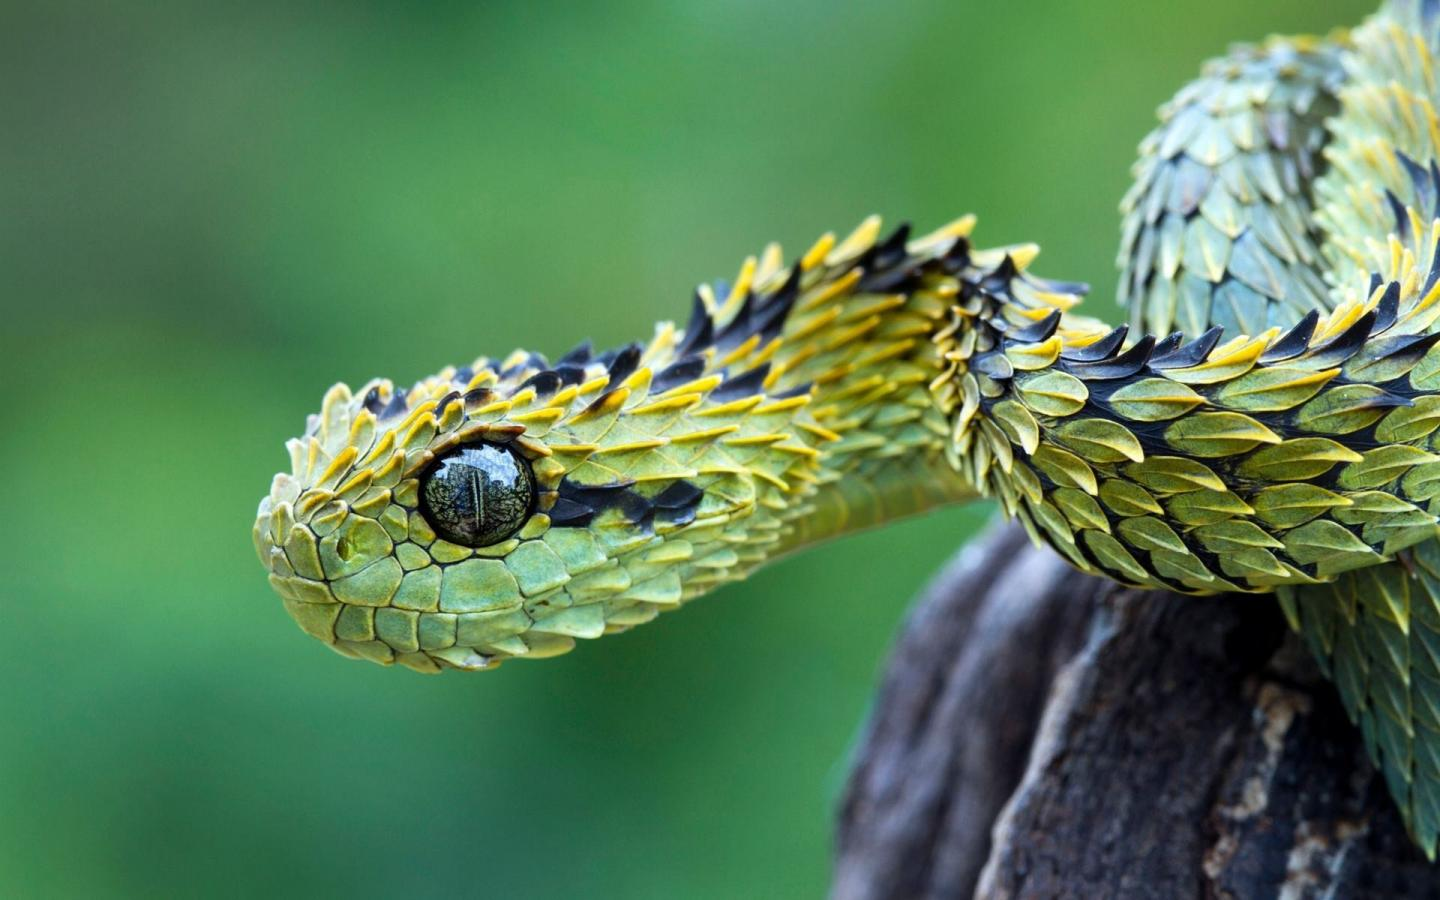 Animals snakes viper reptiles skin wallpaper 29478 1440x900